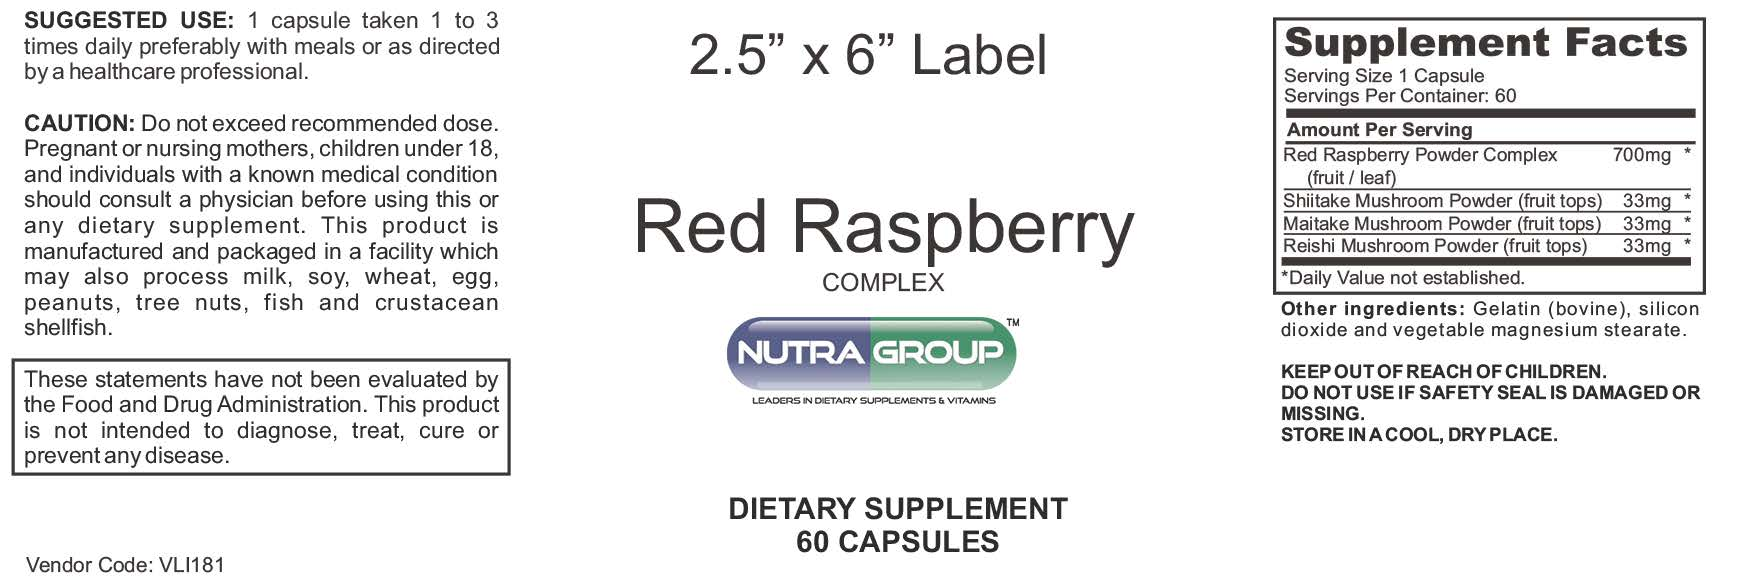 Private Label Red Raspberry supplement